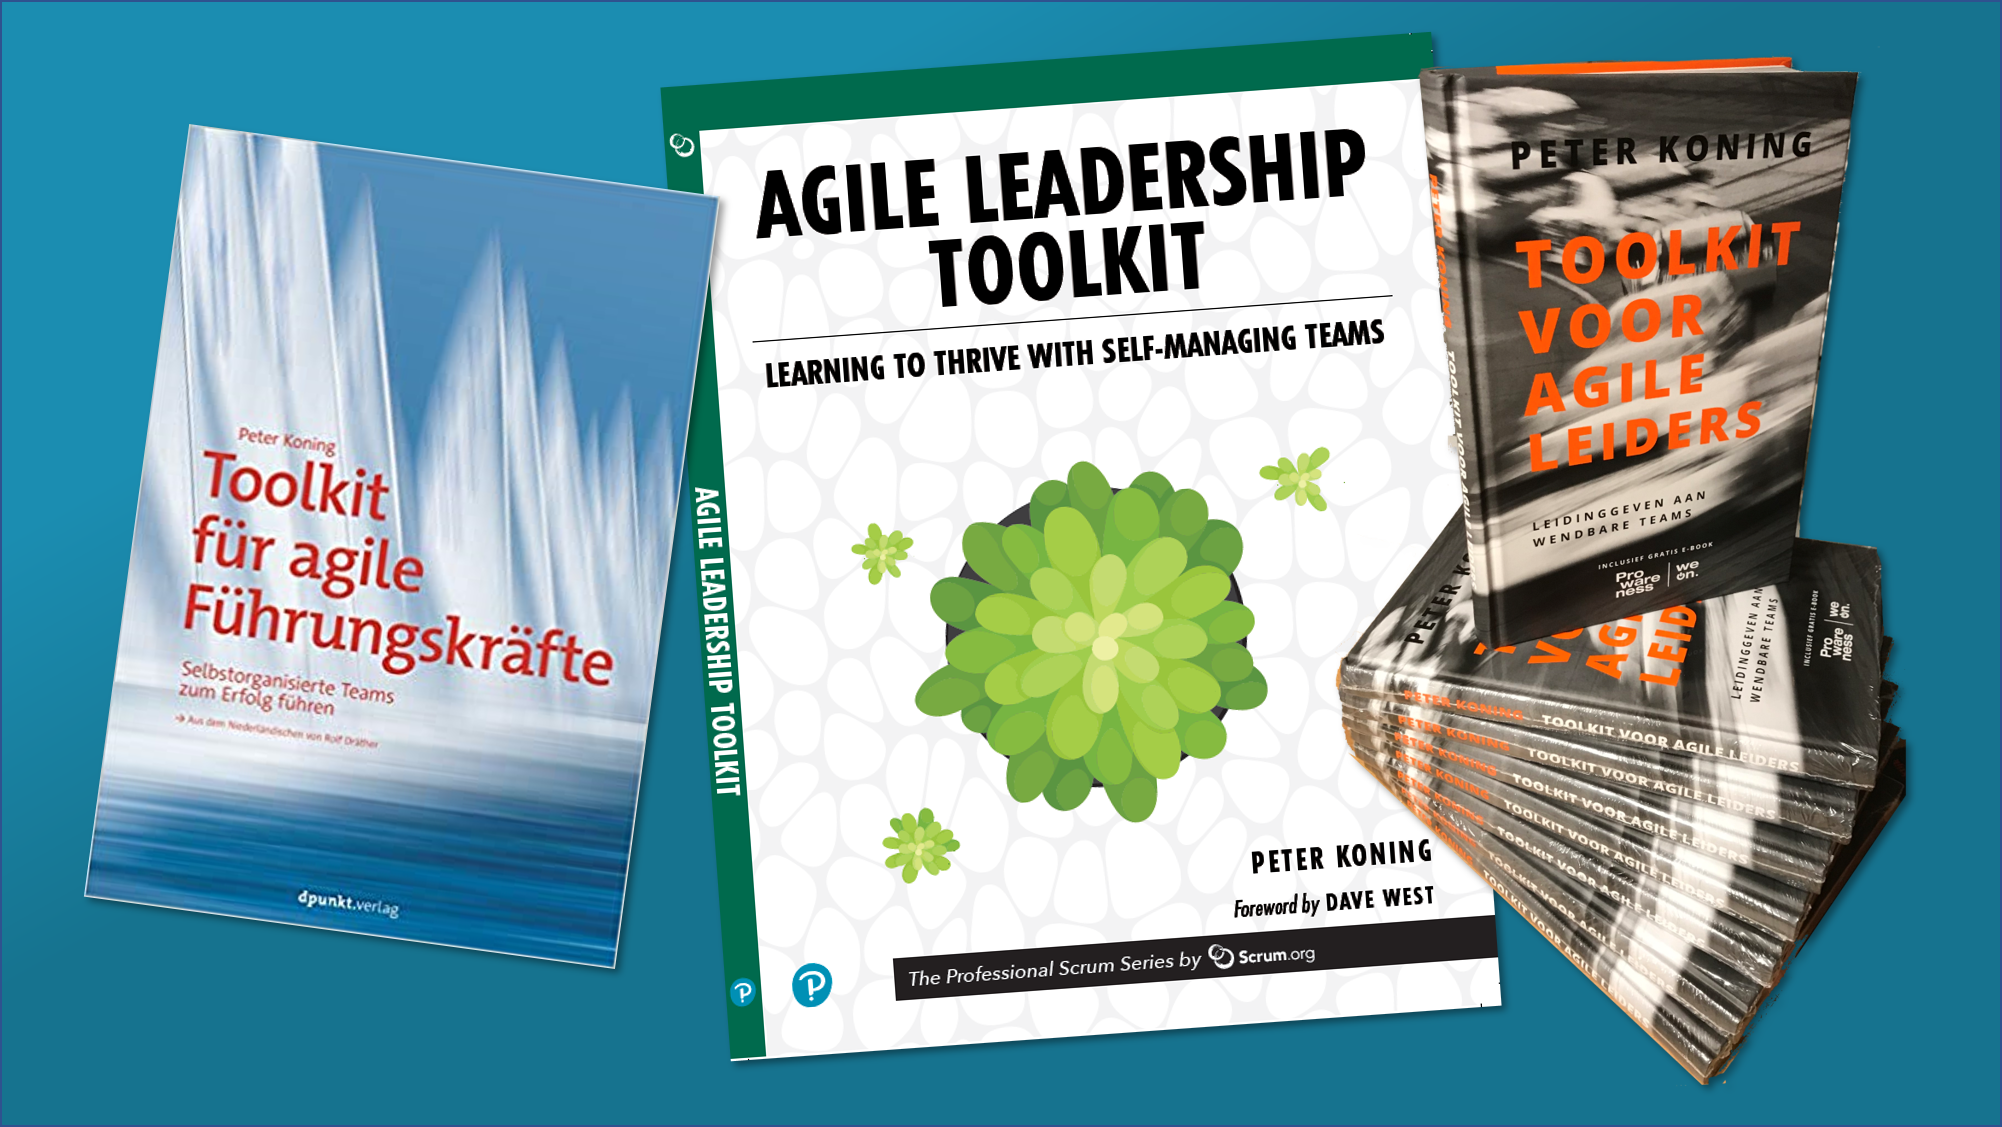 Agile Leadership Toolkit in three languages